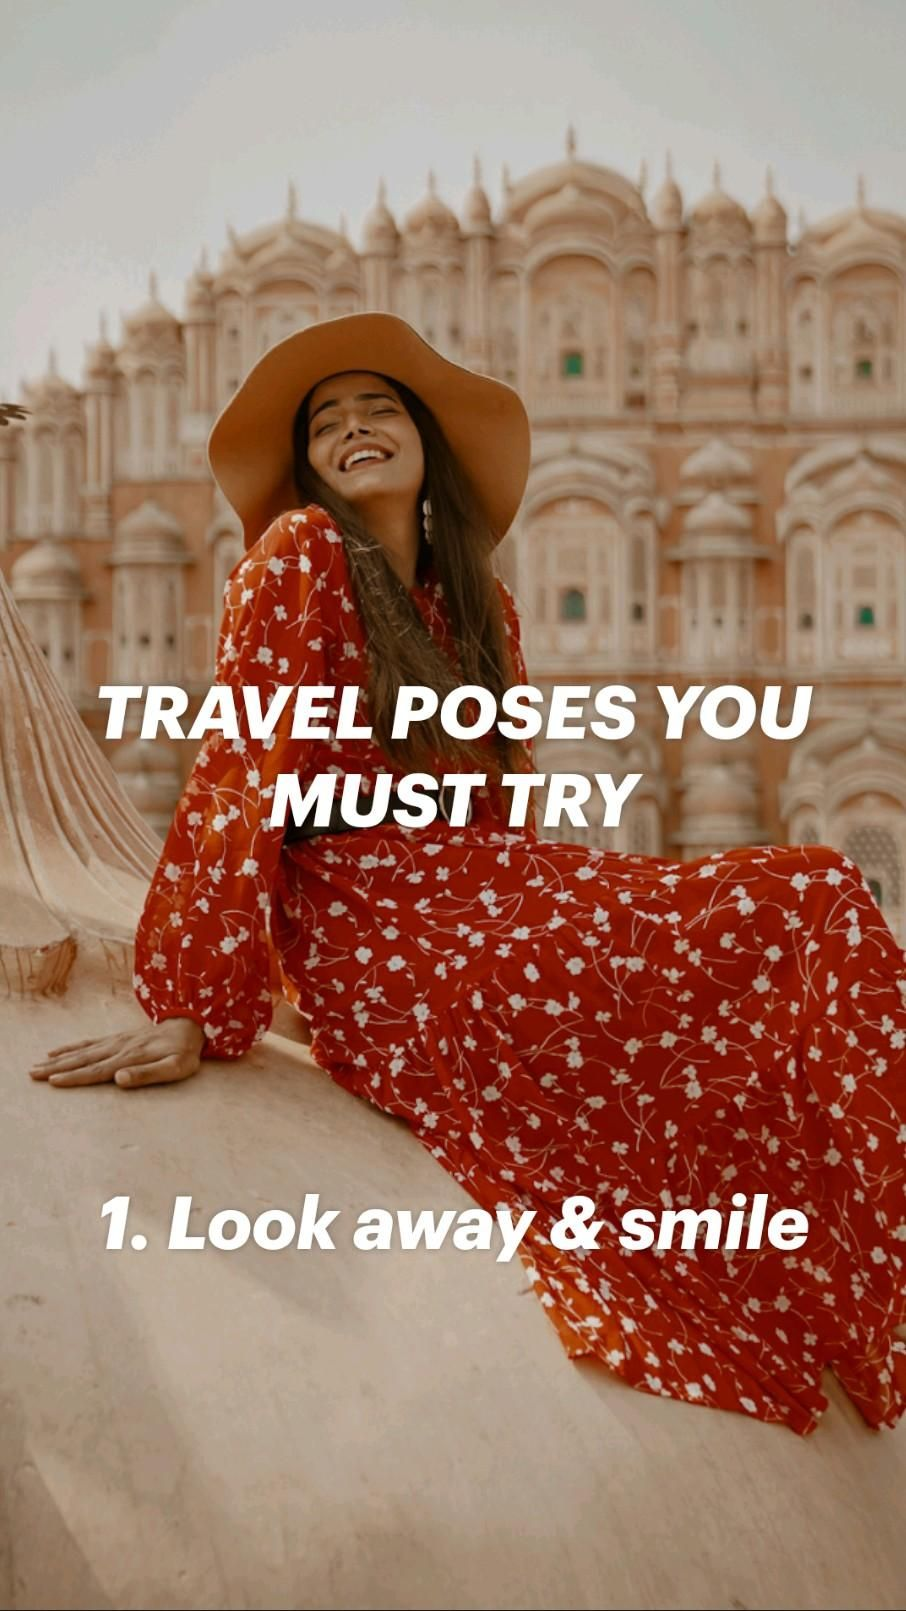 TRAVEL POSES YOU MUST TRY     1. Look away & smile